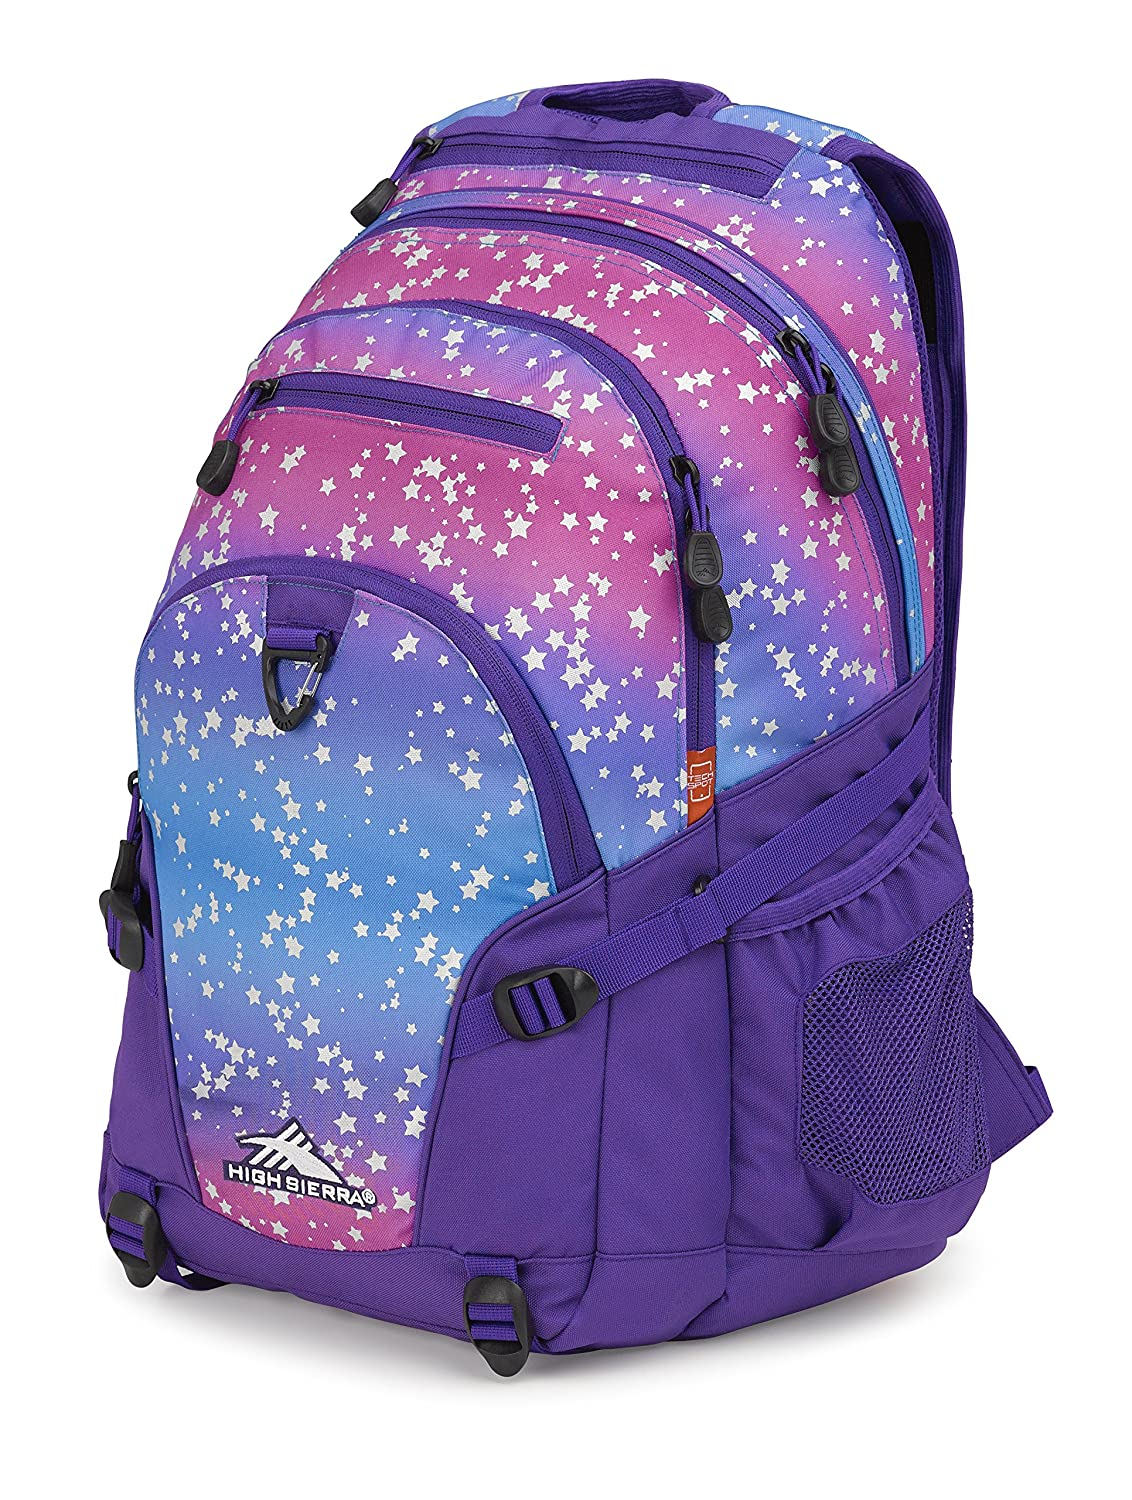 High Sierra Loop Plus Backpack, Space